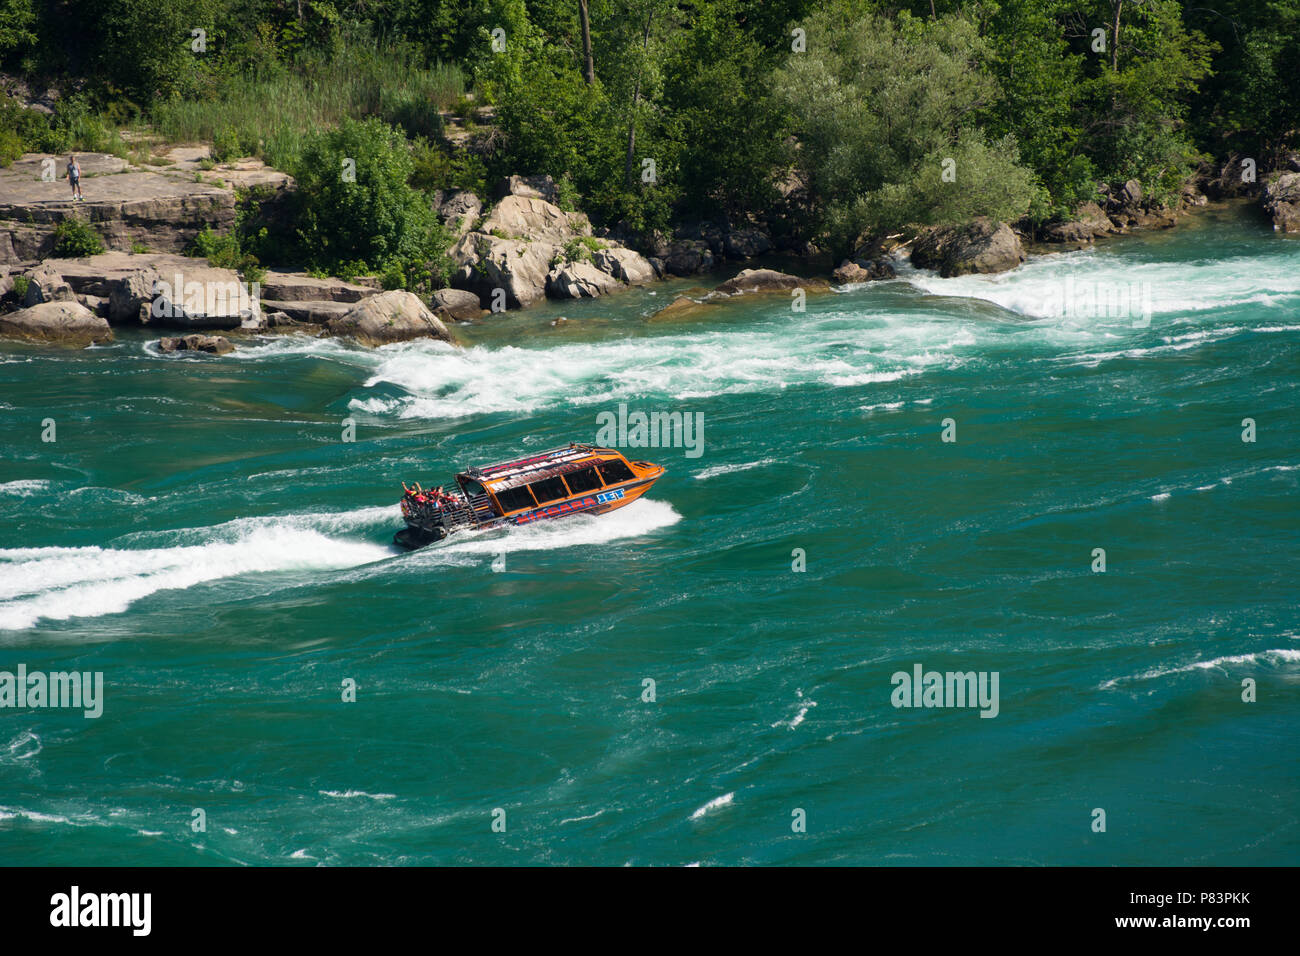 Whirlpool Jet Boat tour on the Niagara River in Niagara Gorge, Niagara Falls, Ontario, Canada - Stock Image